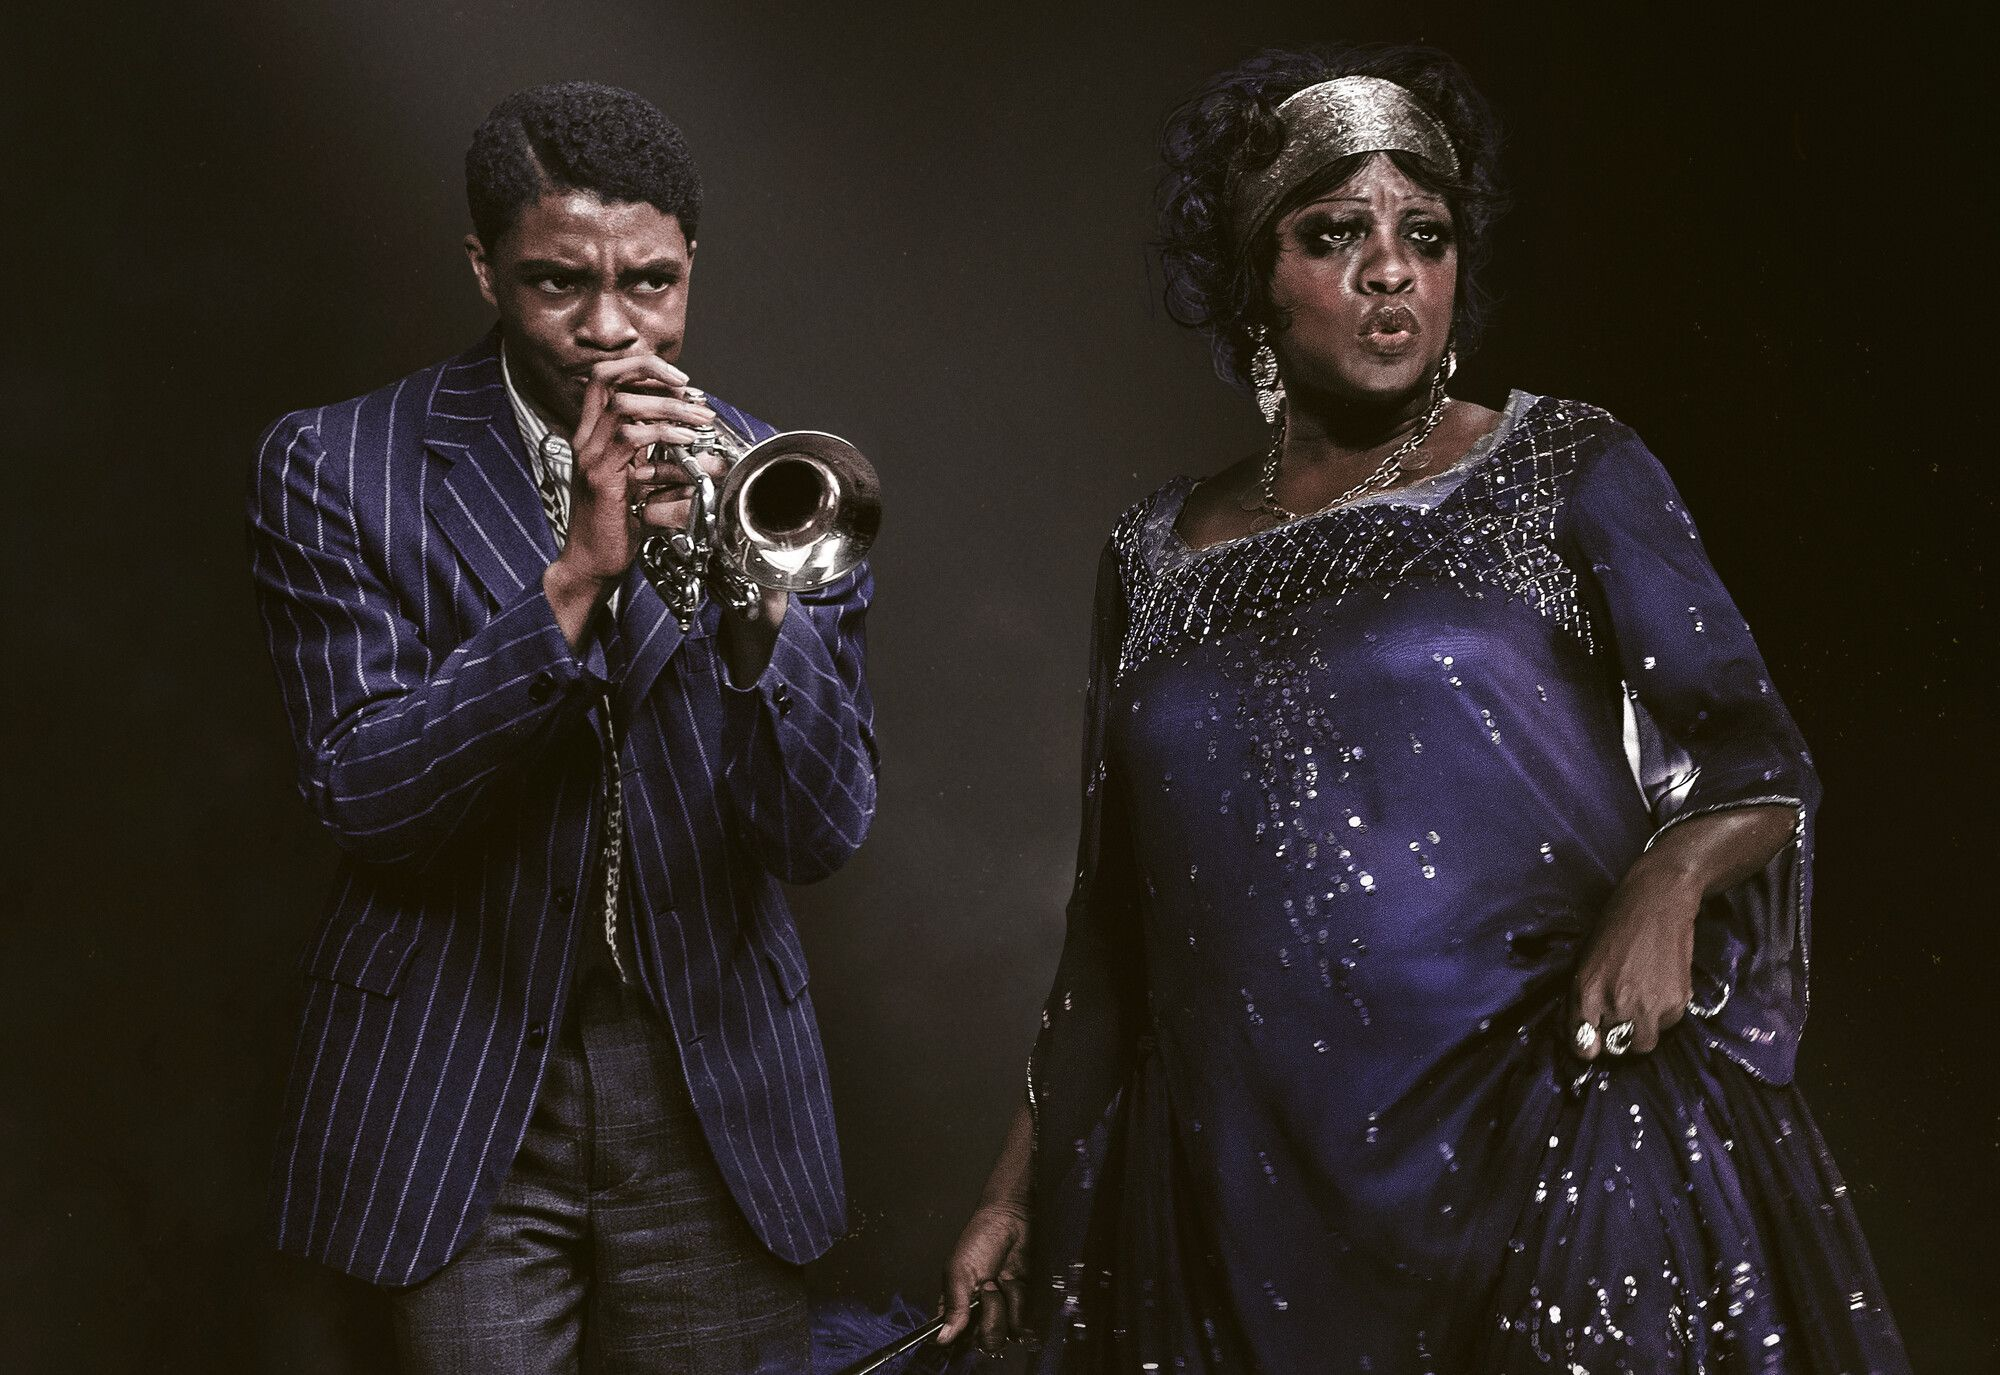 20 Hollywood Films Of 2020 That Brought Cinema To Our Homes_Ma Rainey's Black Bottom